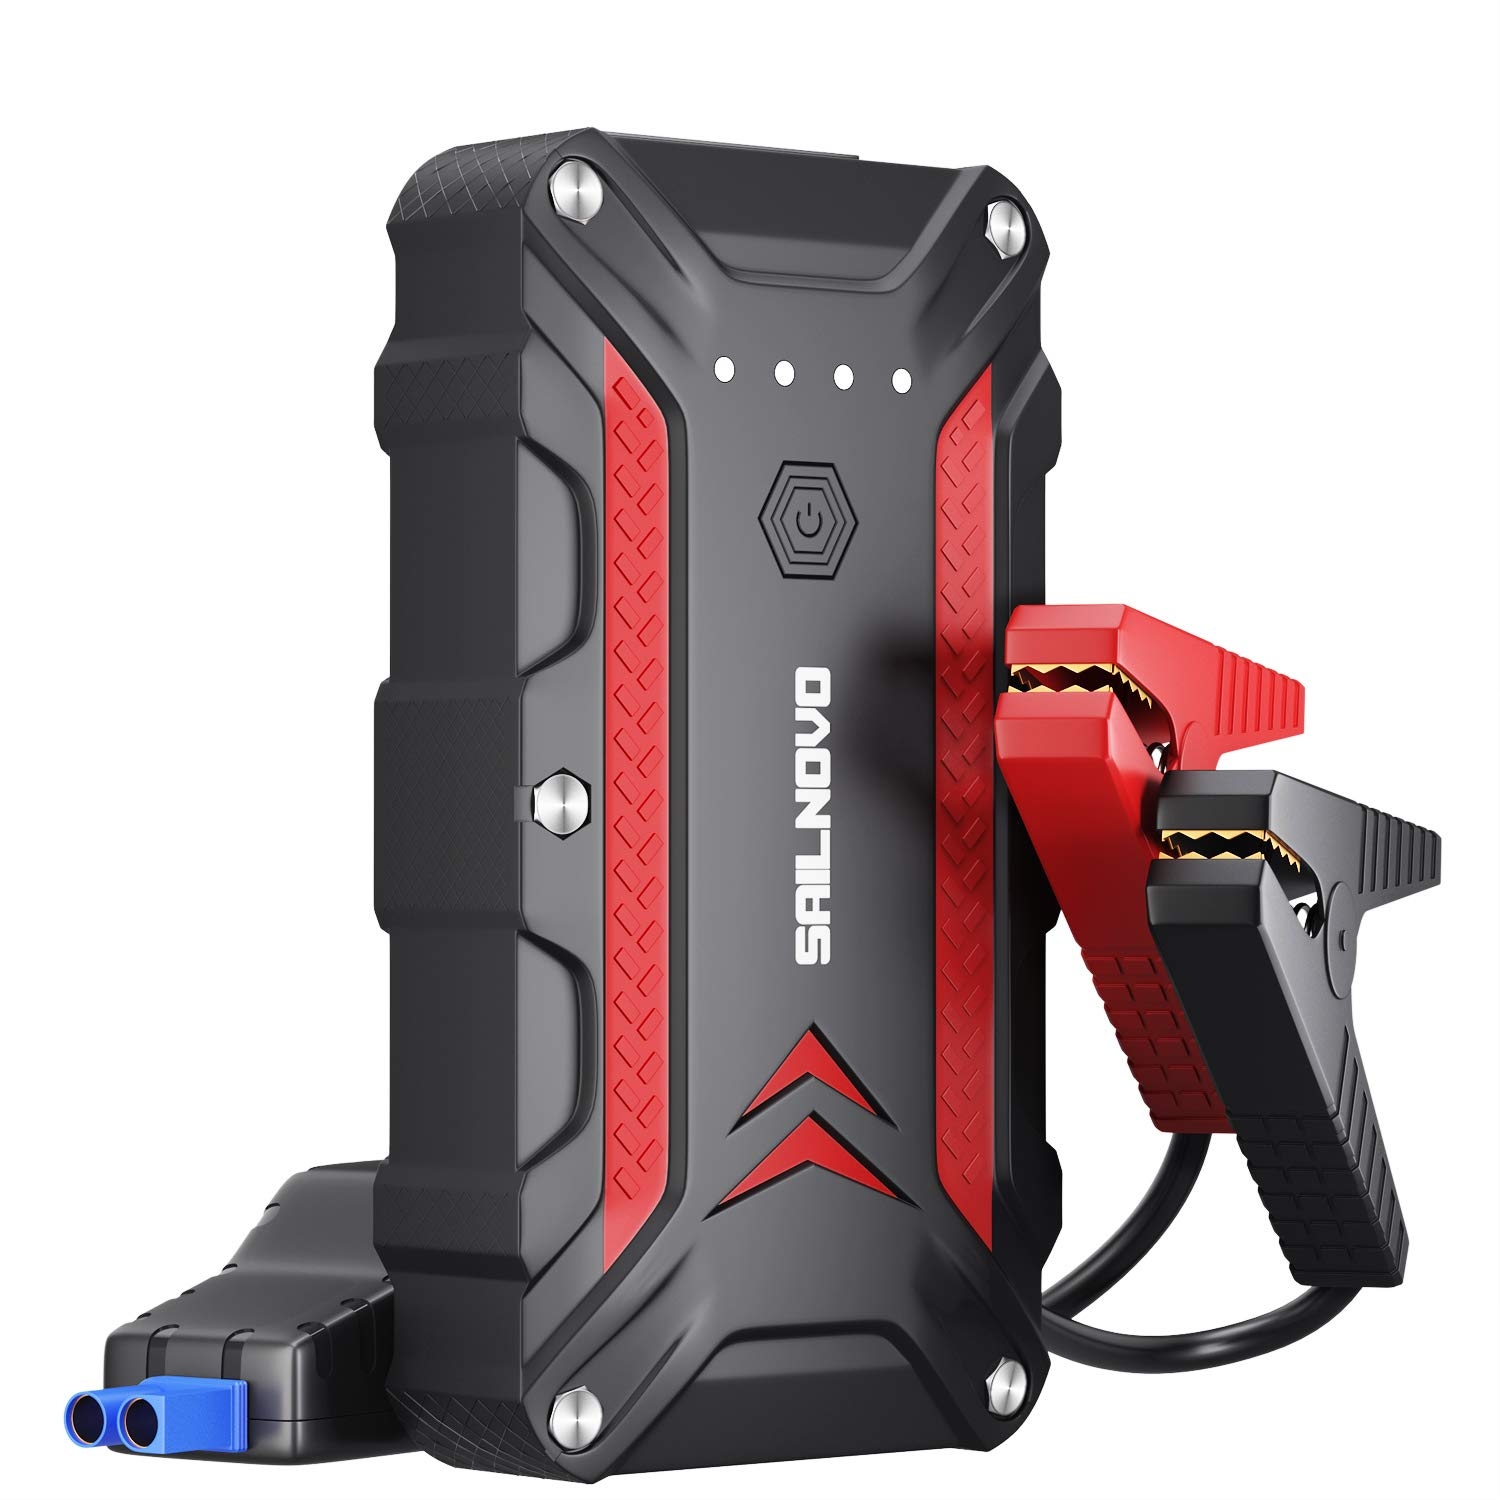 Adakiit 1200A Portable Car Battery Jump Starter, Waterproof Jump Start Battery Pack (up To 7.5L Gas, 6.0L Diesel Engine) 12V Lithium Auto Battery Booster Power Pack For Cars Truck SUV